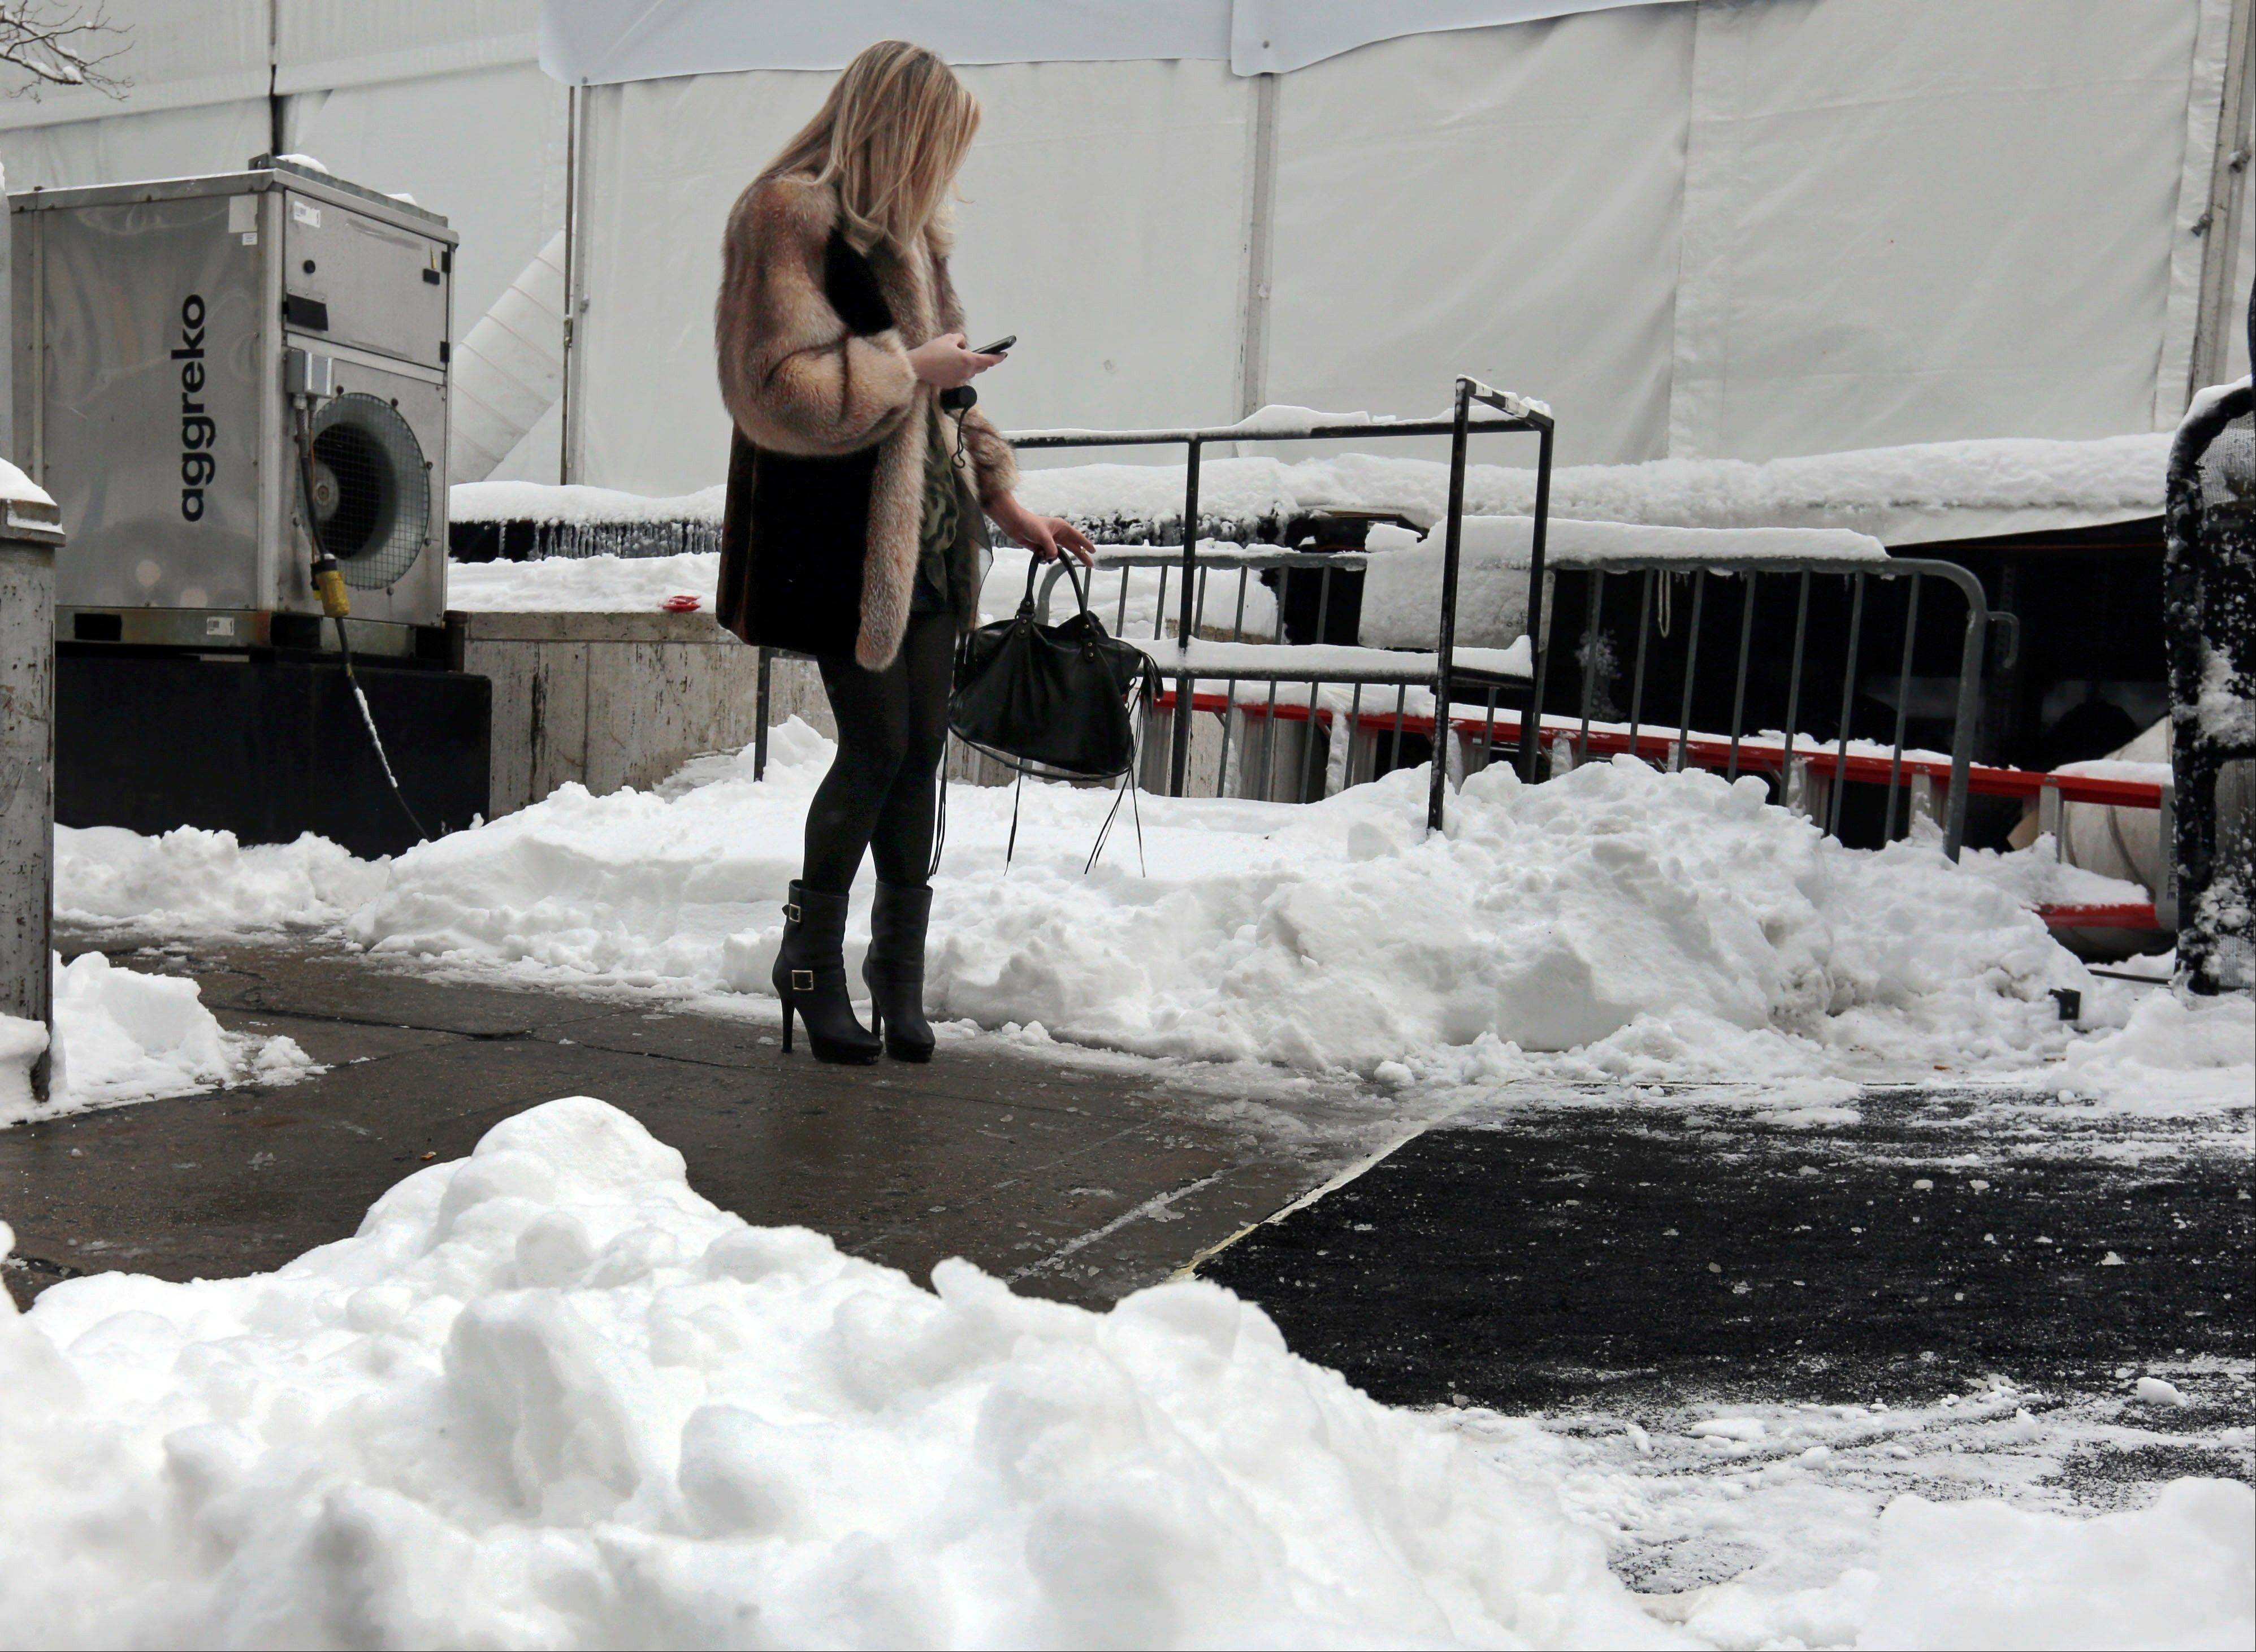 A woman checks her phone Saturday outside Lincoln Center in New York City. The snow total in Central Park was 8.1 inches by 3 a.m.